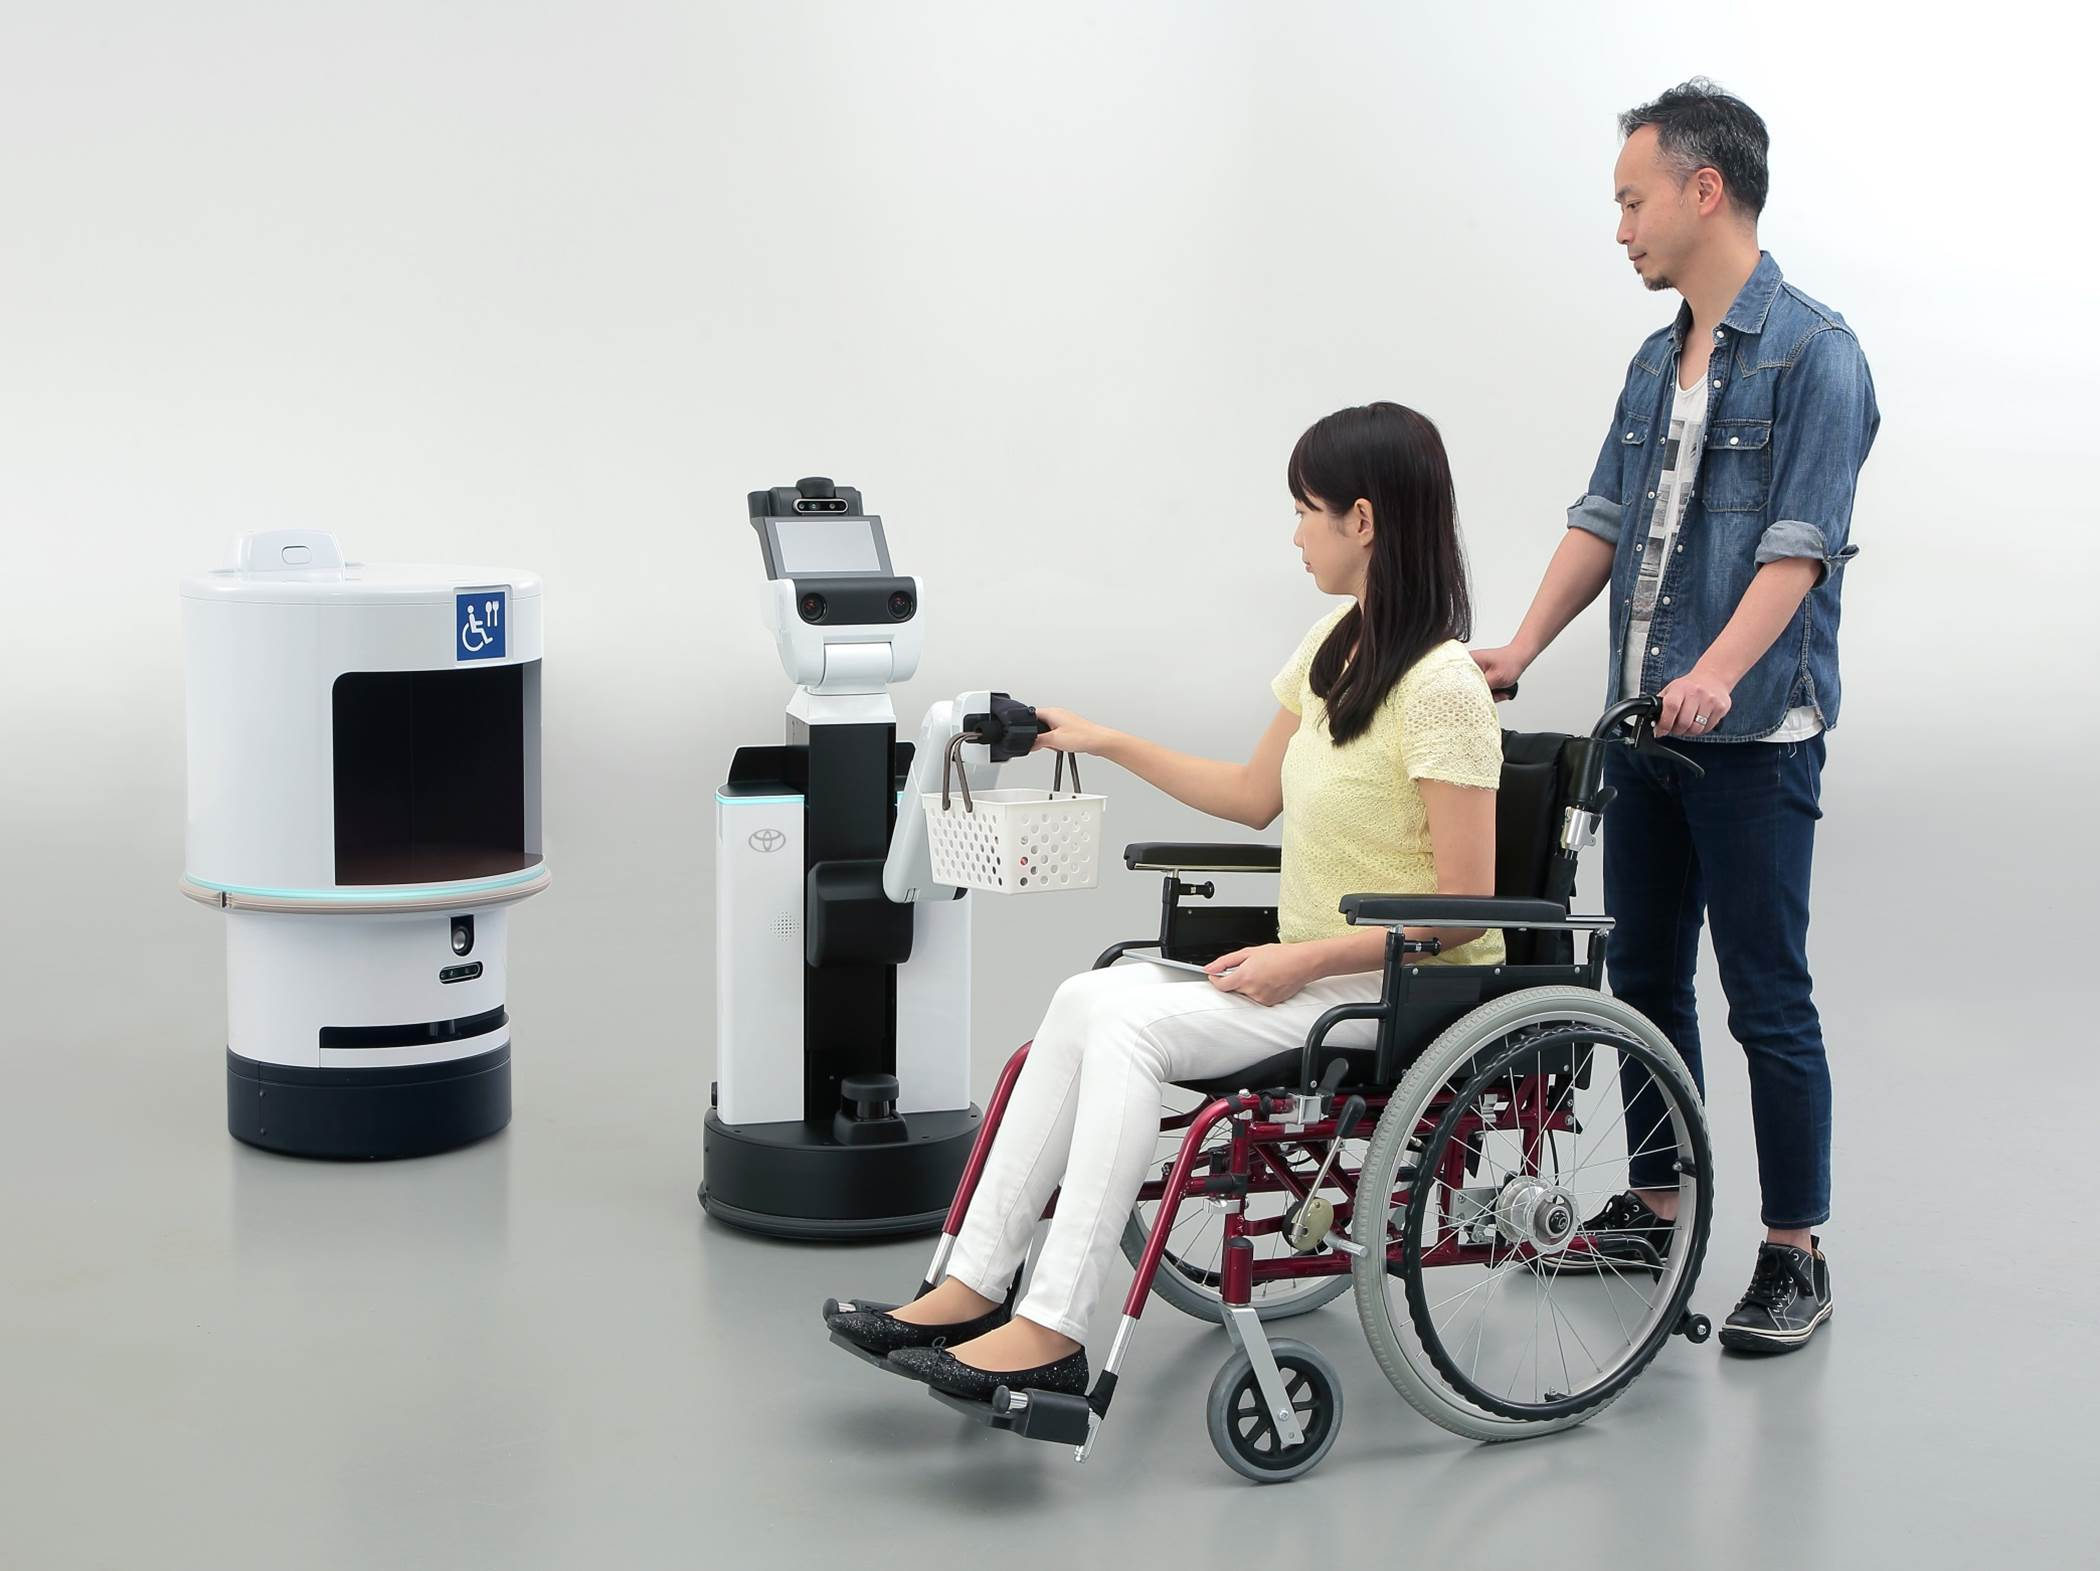 HSR Human Support Robot DSR Delivery Support Robot - Meet the robots Toyota is bringing to the 2020 Tokyo Olympic Games